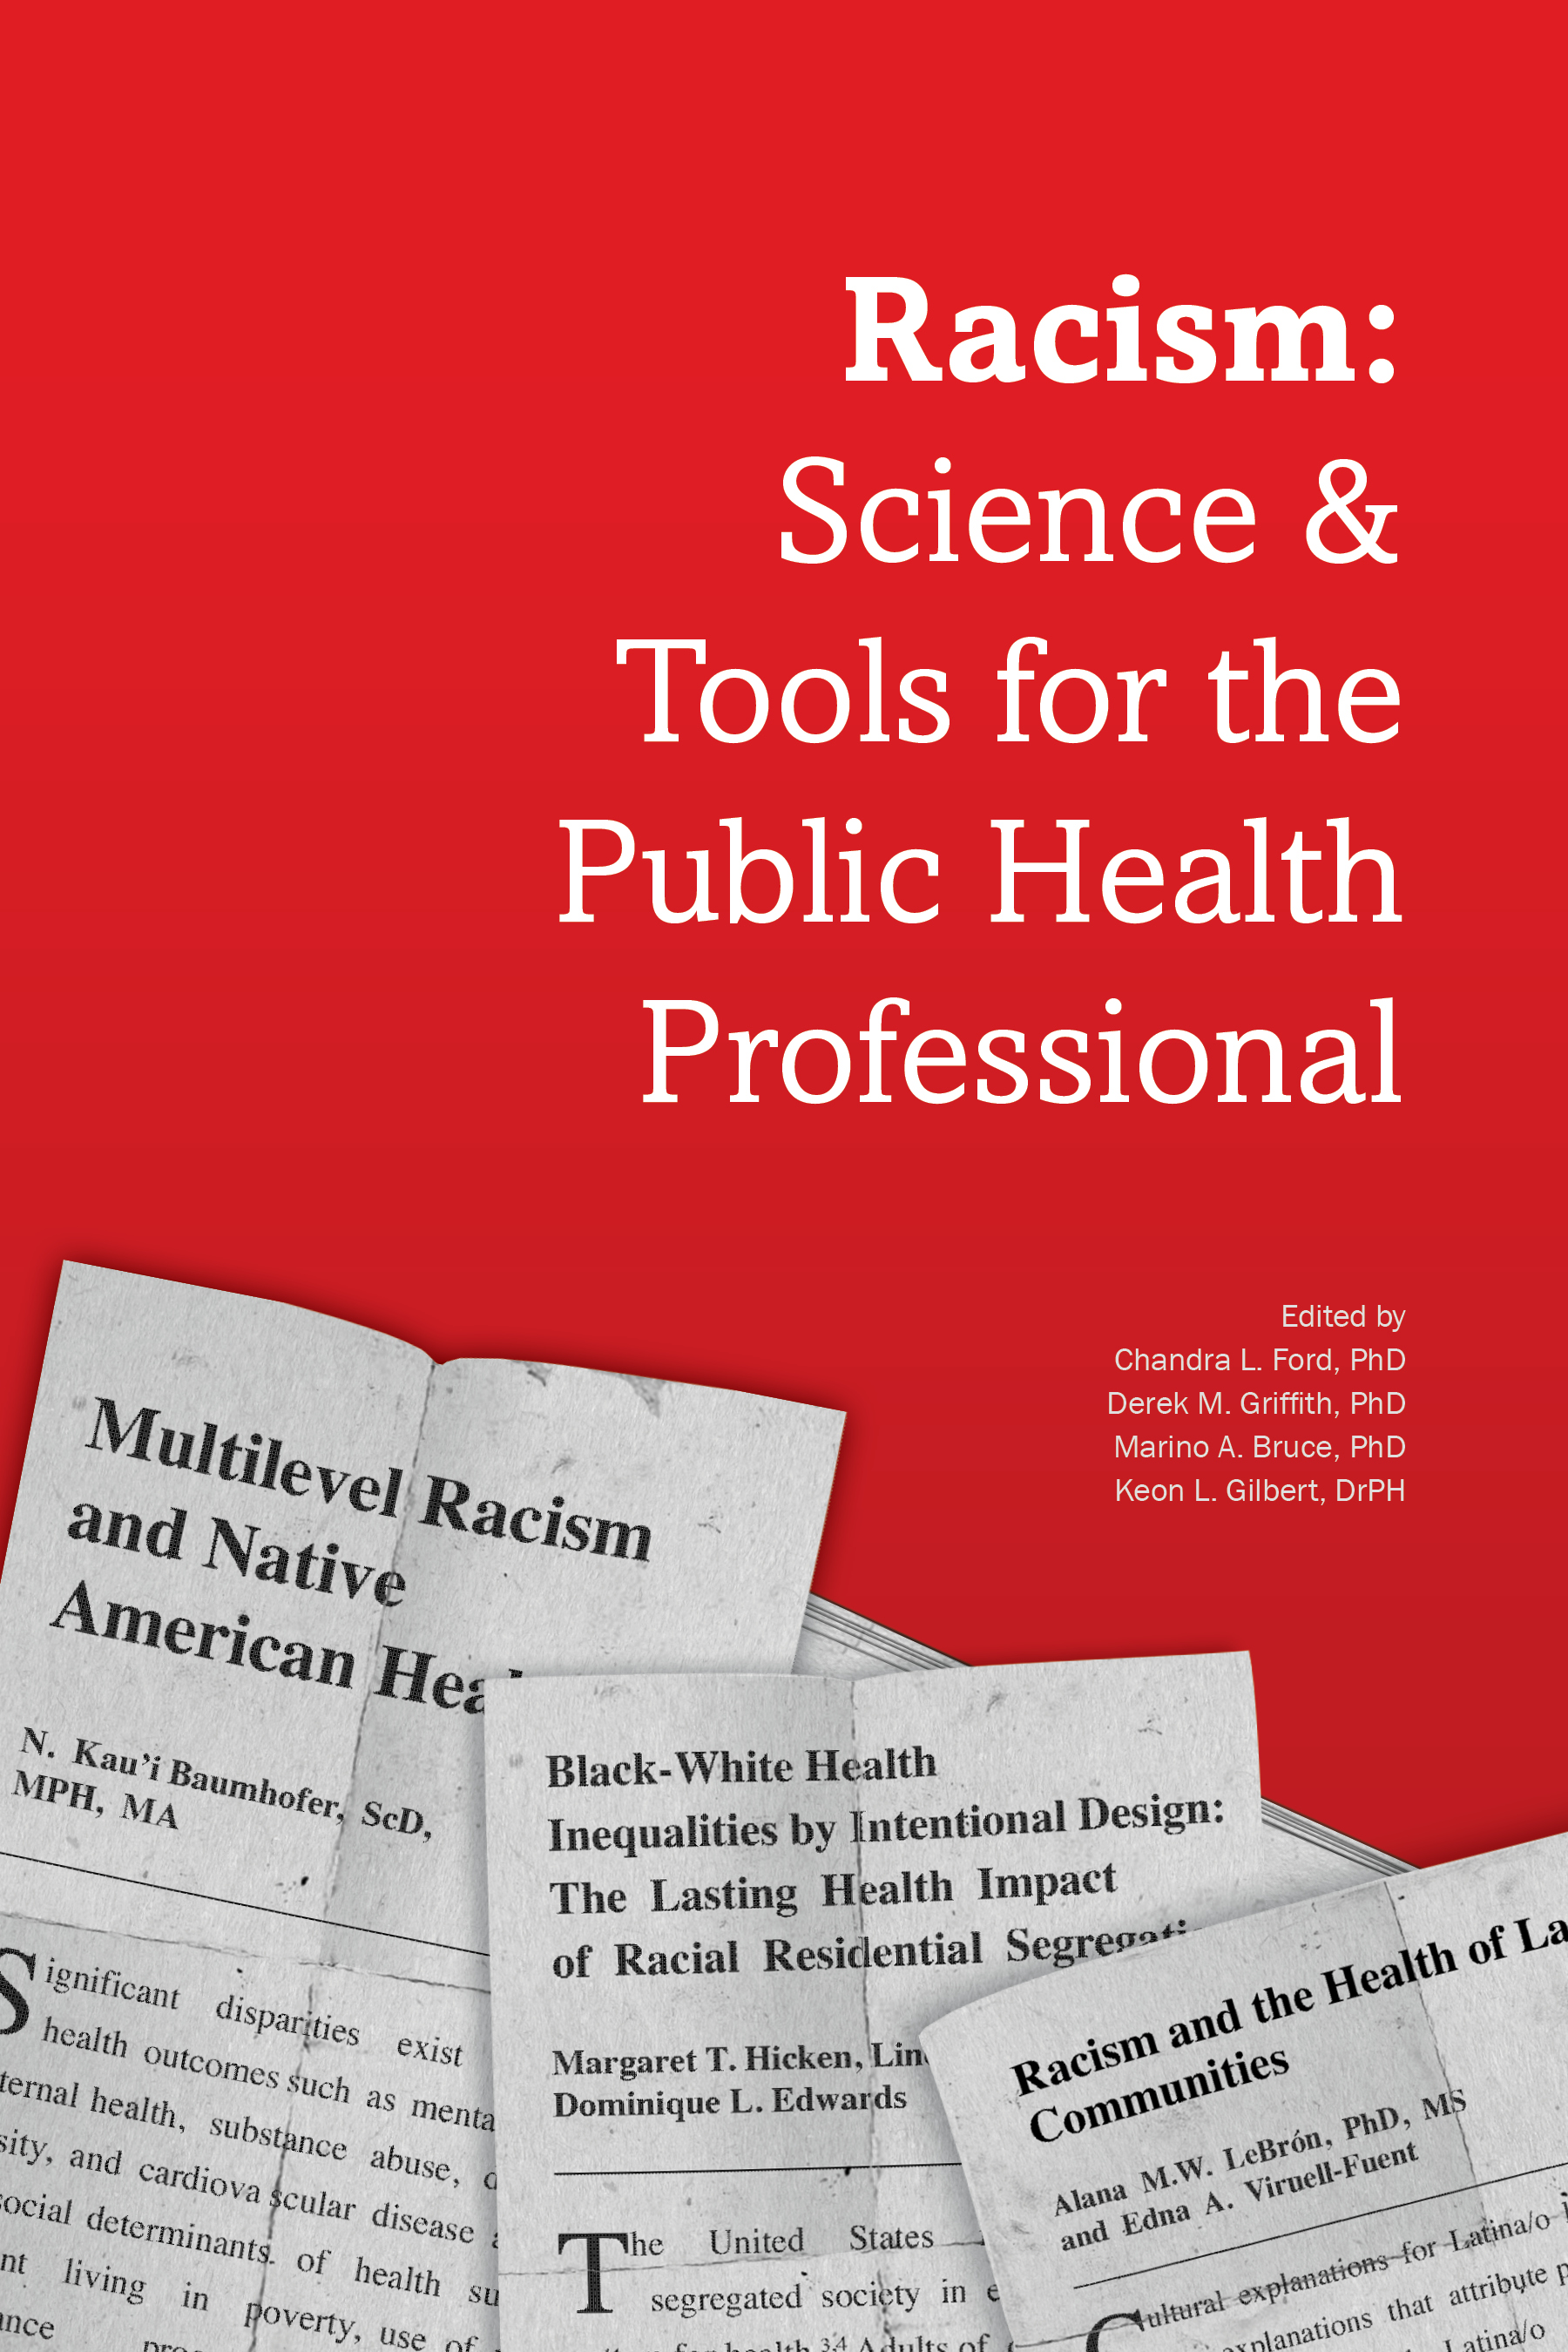 Racism: Science & Tools for the Public Health Professional<BR>Non-Member Price: $69.00<BR>Member Price: $48.30